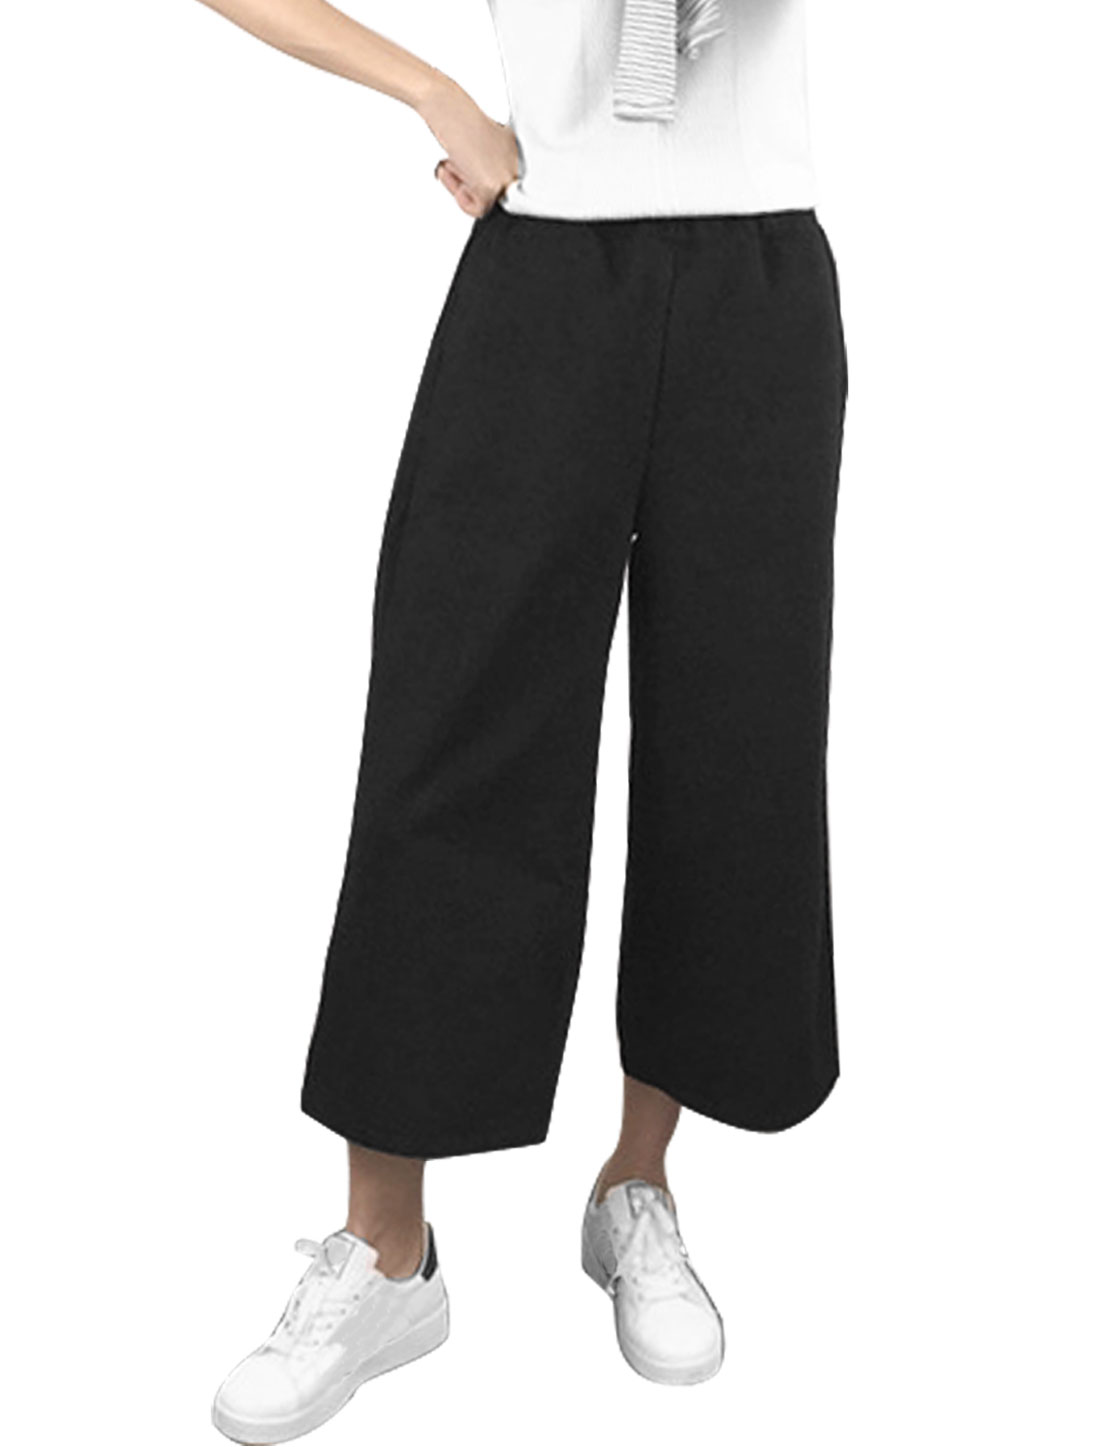 Women High Waist Wide Legs Worsted Cropped Pants Black XS